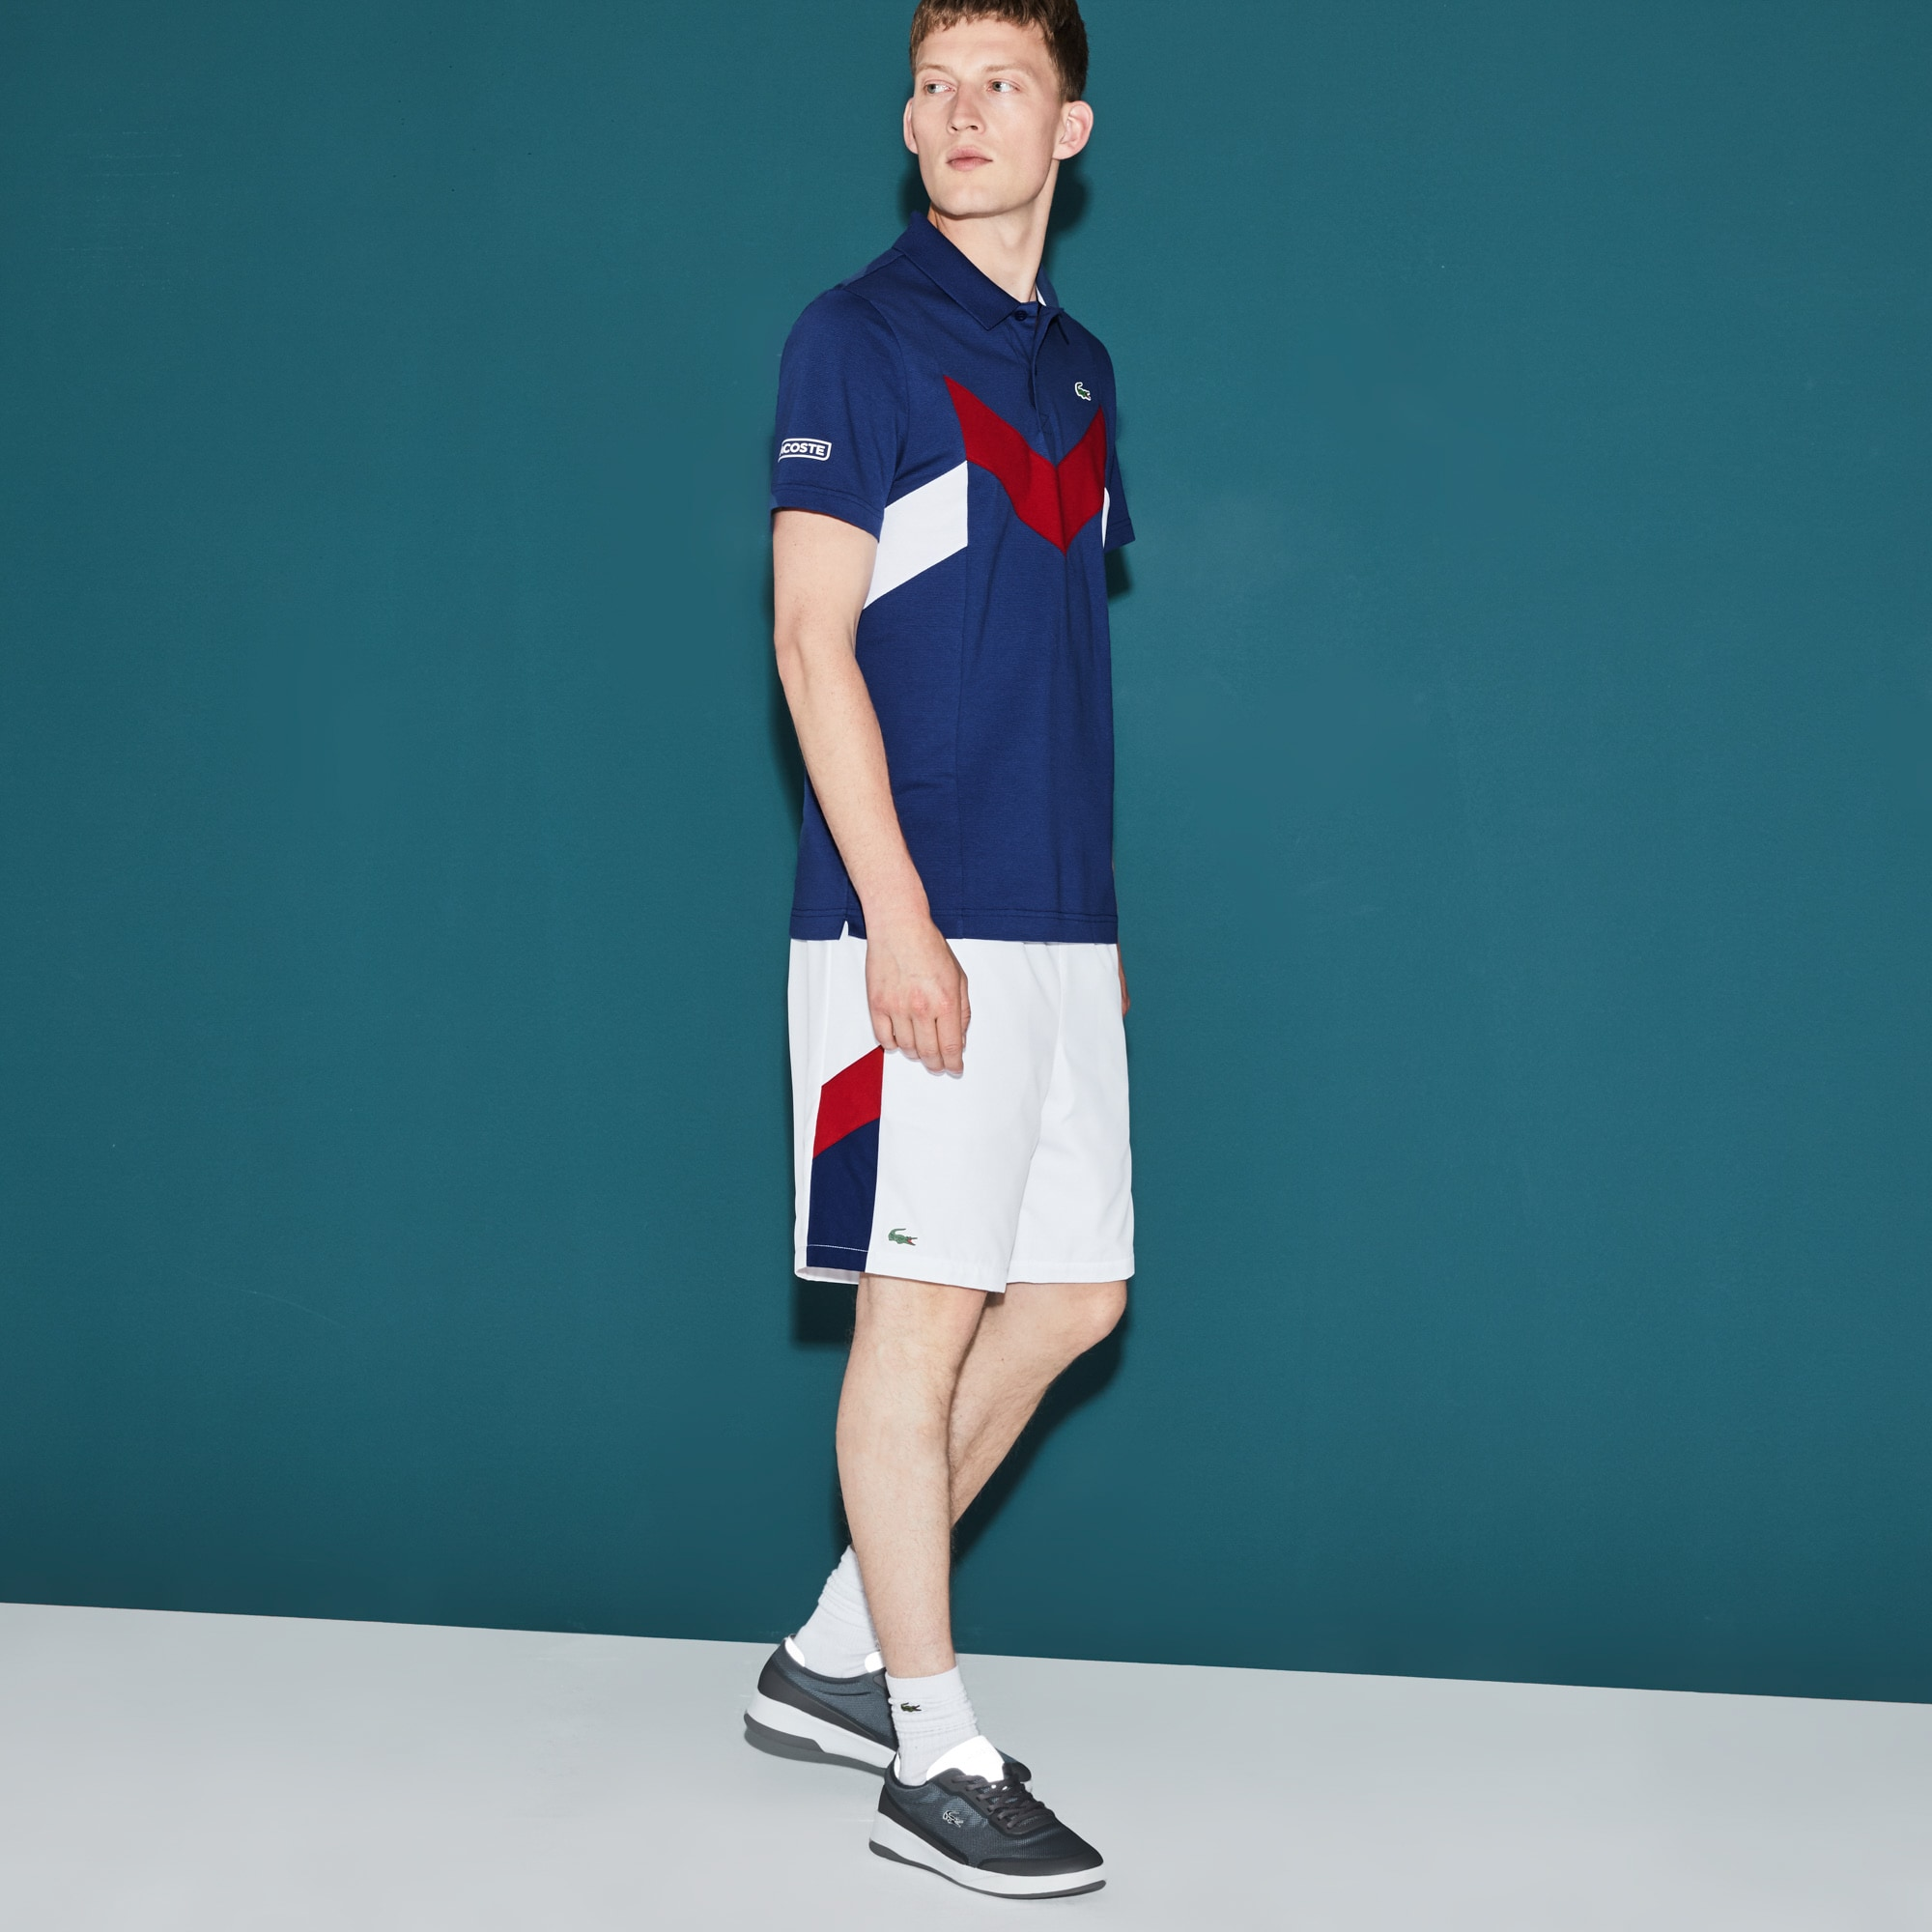 Herren-Shorts mit Colorblock-Band LACOSTE SPORT TENNIS